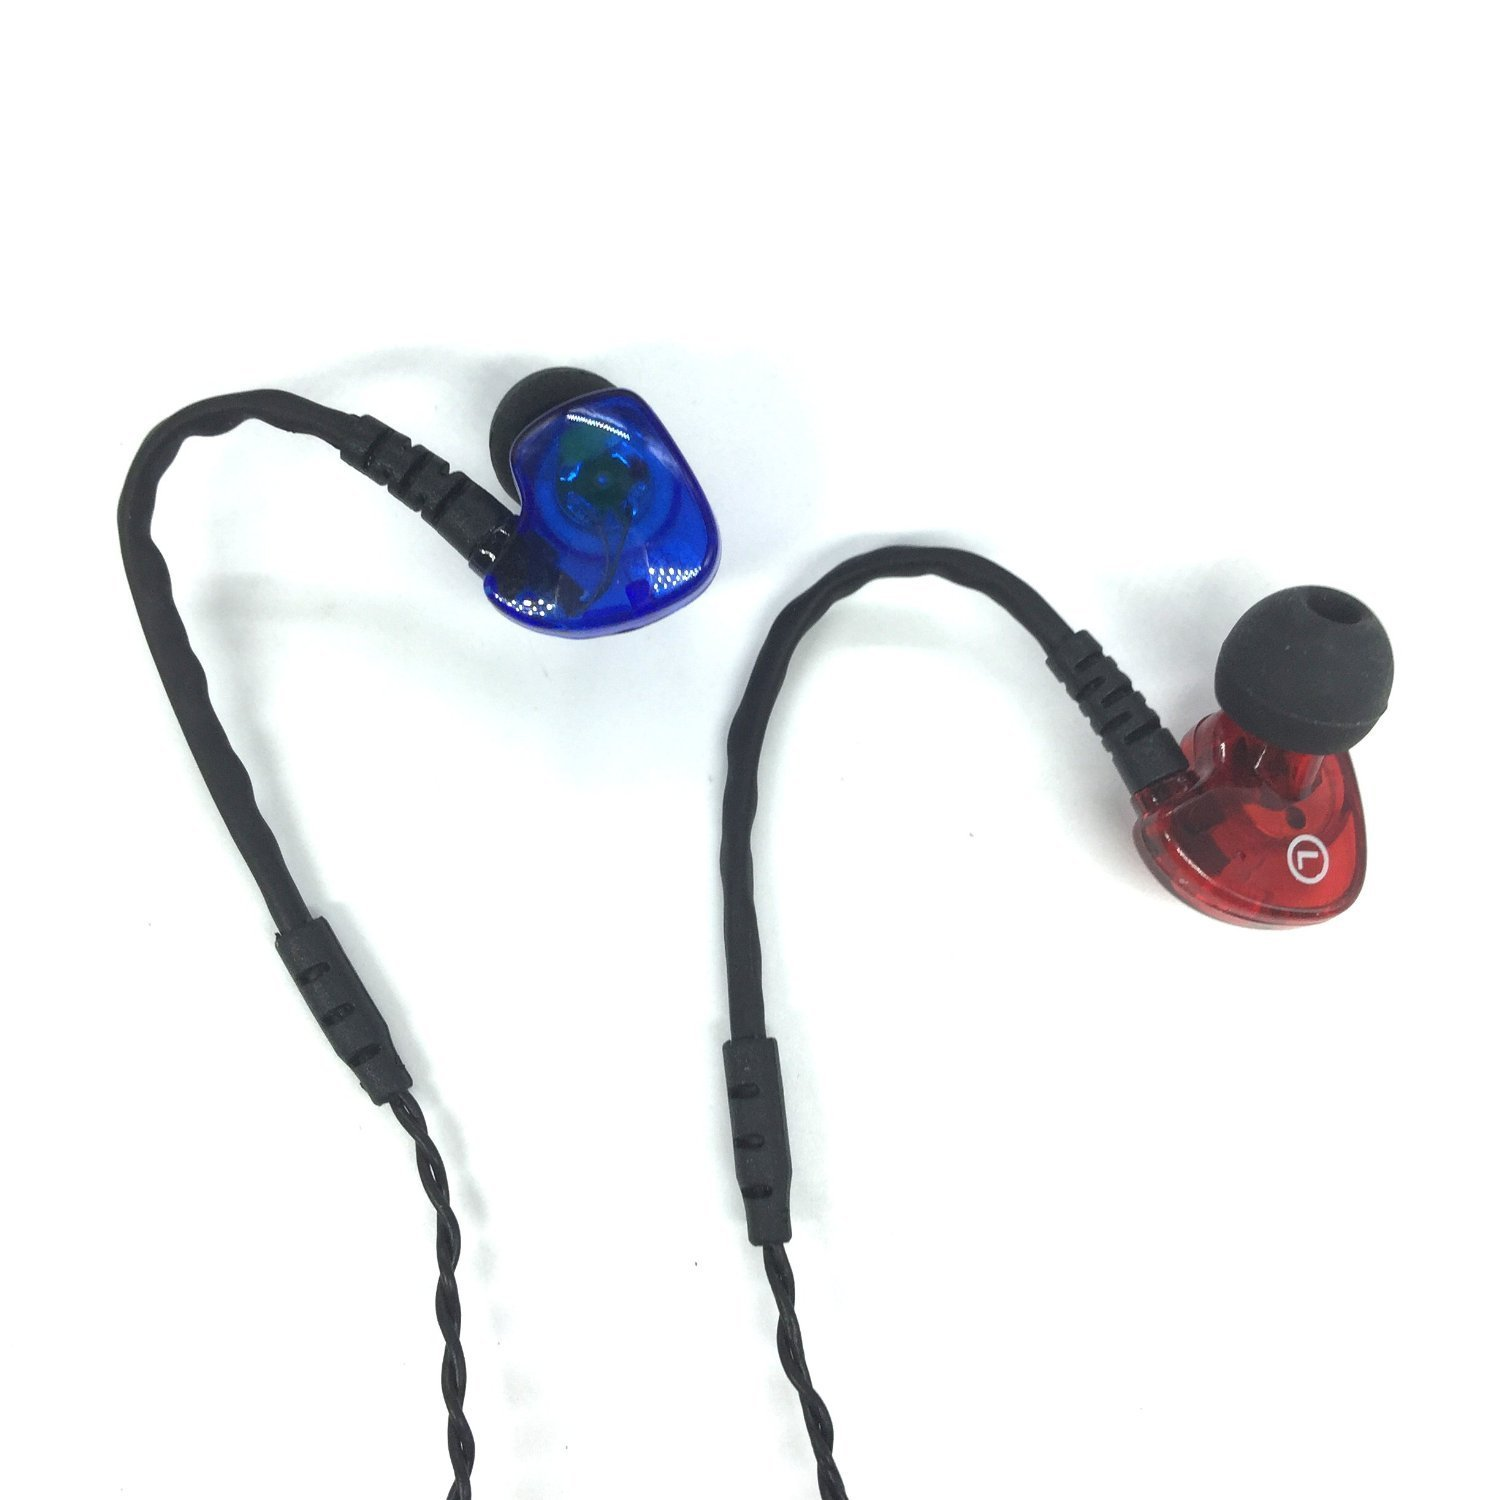 Sport Earphones,buyitpremium Earbuds Noise Isolating & Bass with Mic Stereo 3.5mm Headphone Earphone Compatible for Apple Iphone Ipod Ipad Samsung HTC Android Smartphone Mp3 Players